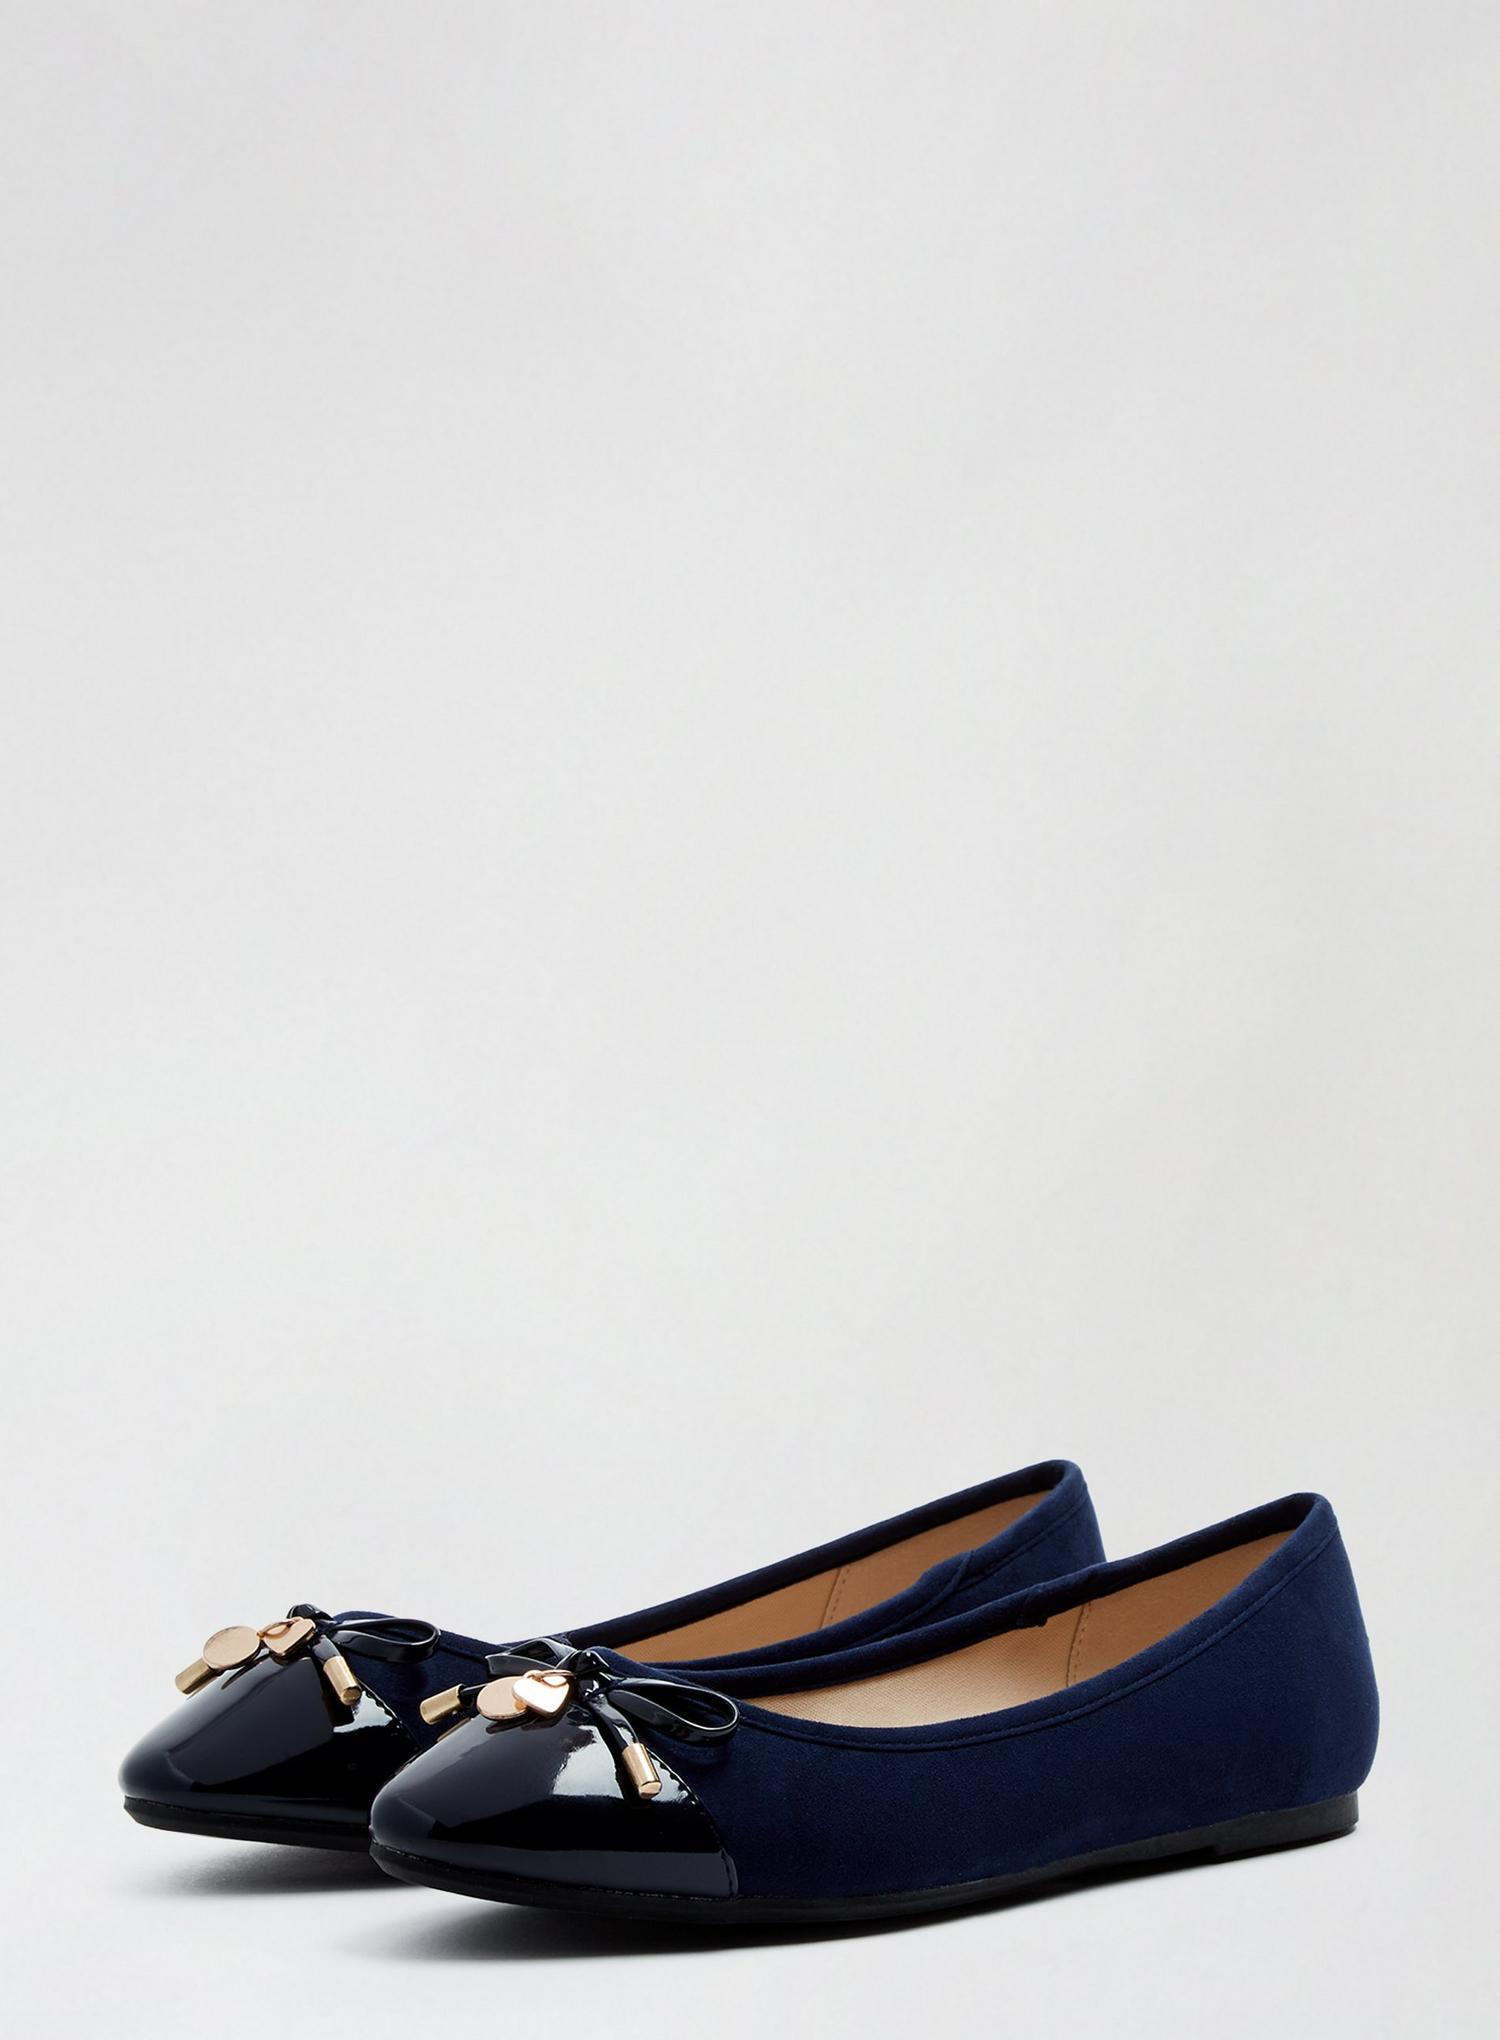 148 Wide Fit Navy Pacific Ballerina Pumps image number 1